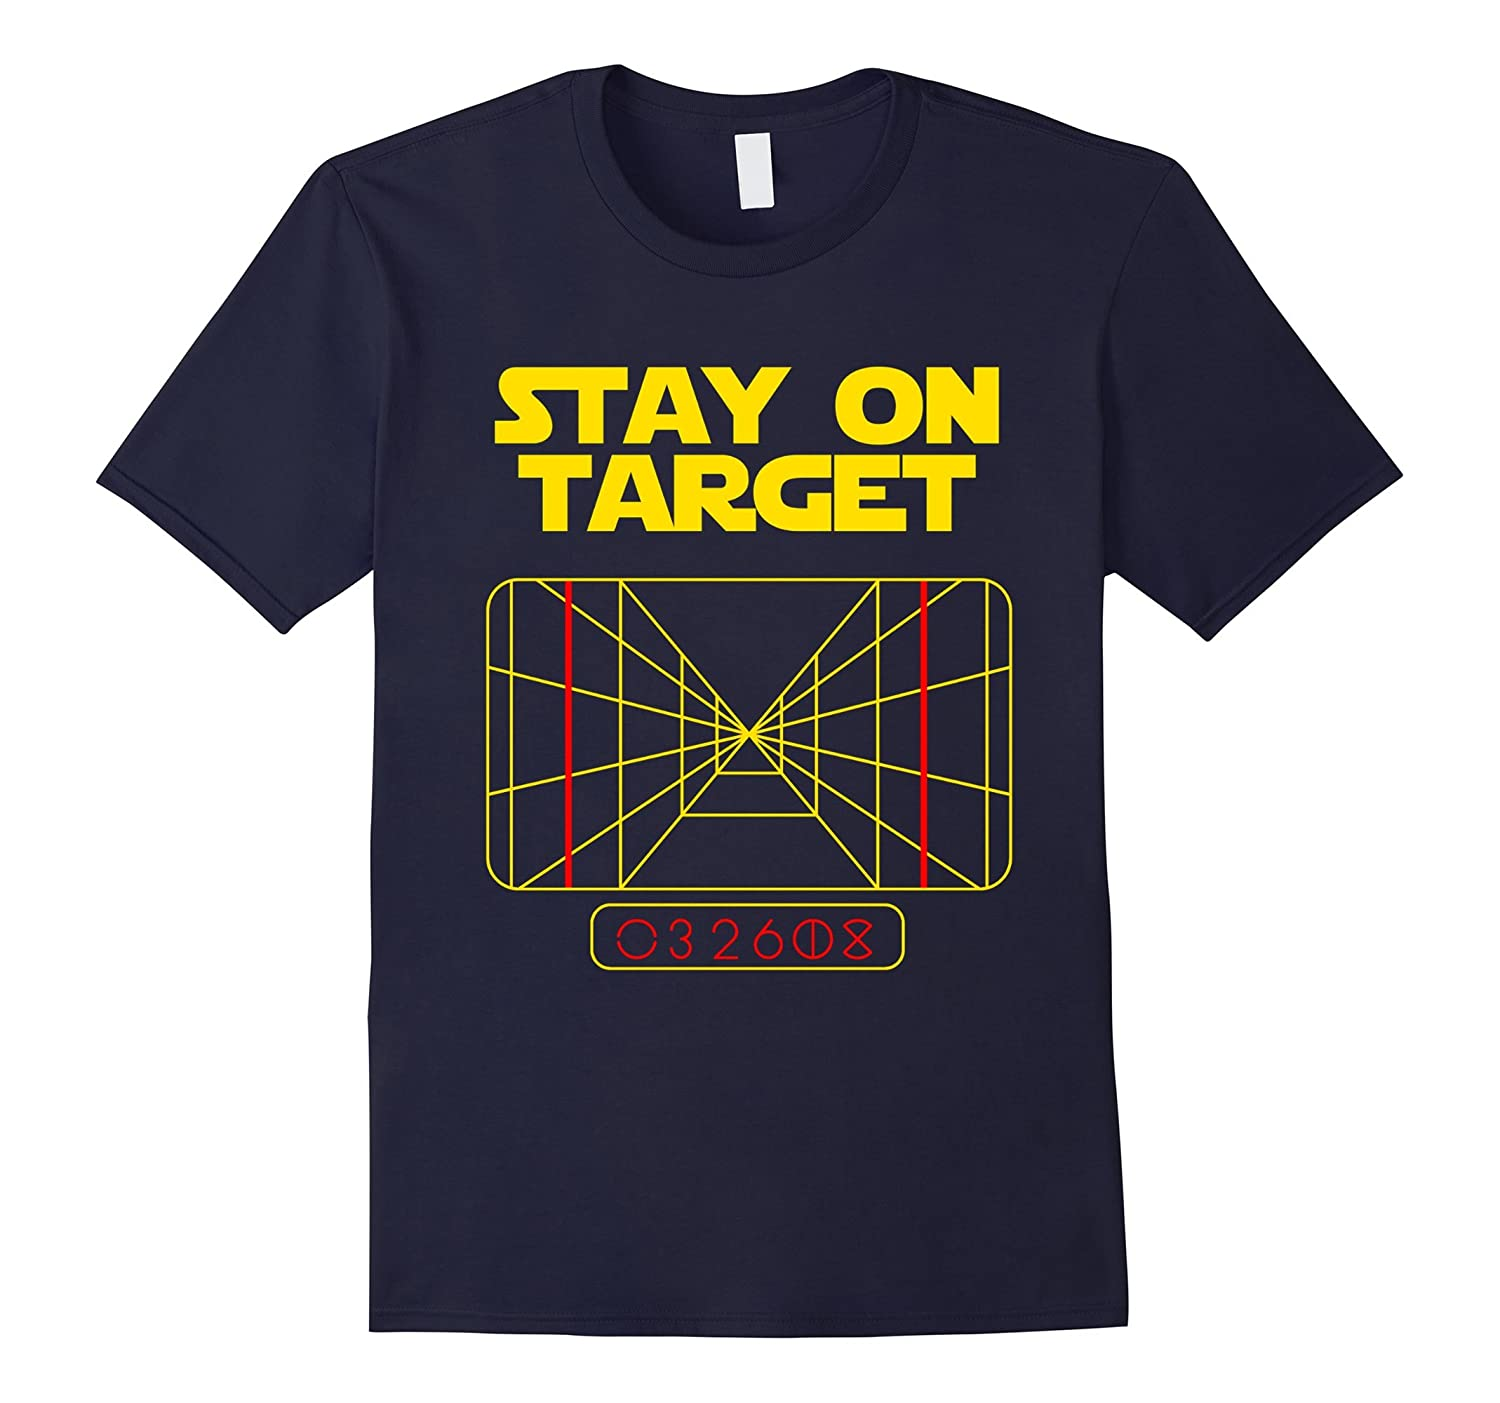 Stay on Target-ANZ